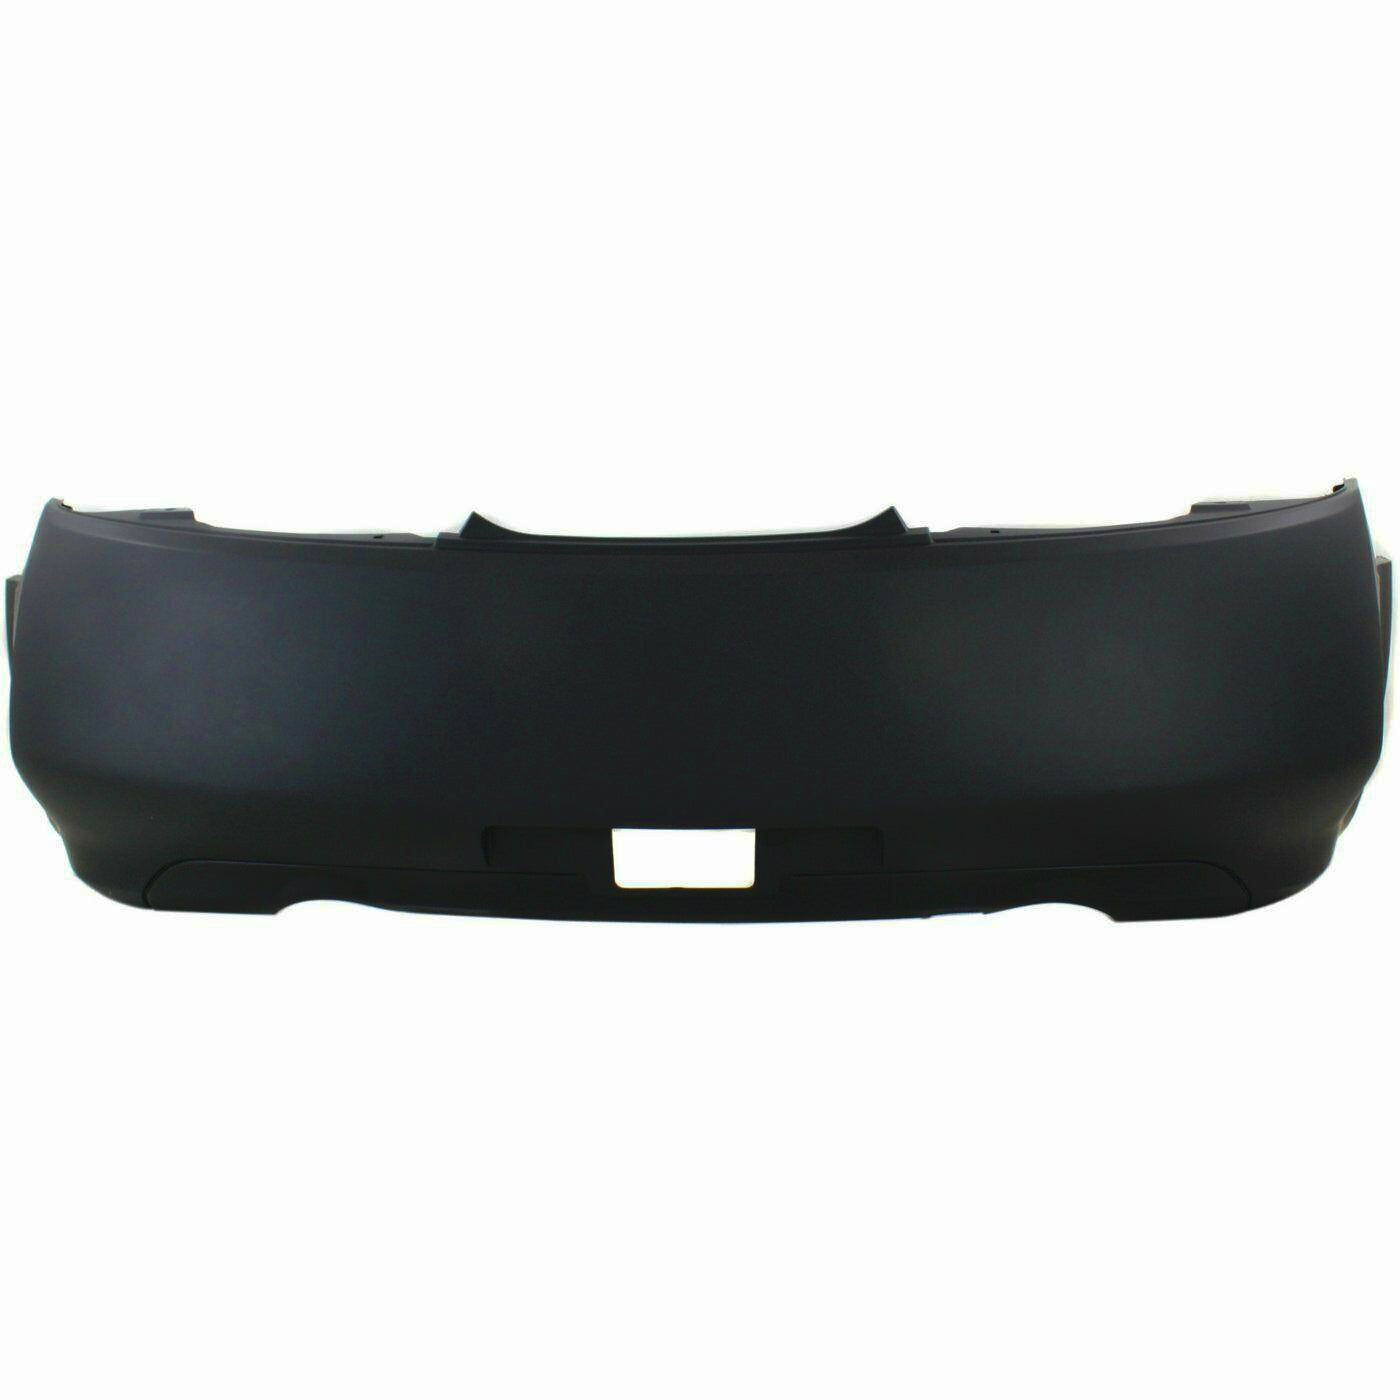 2003-2007 Infiniti G35 Coupe Rear Bumper